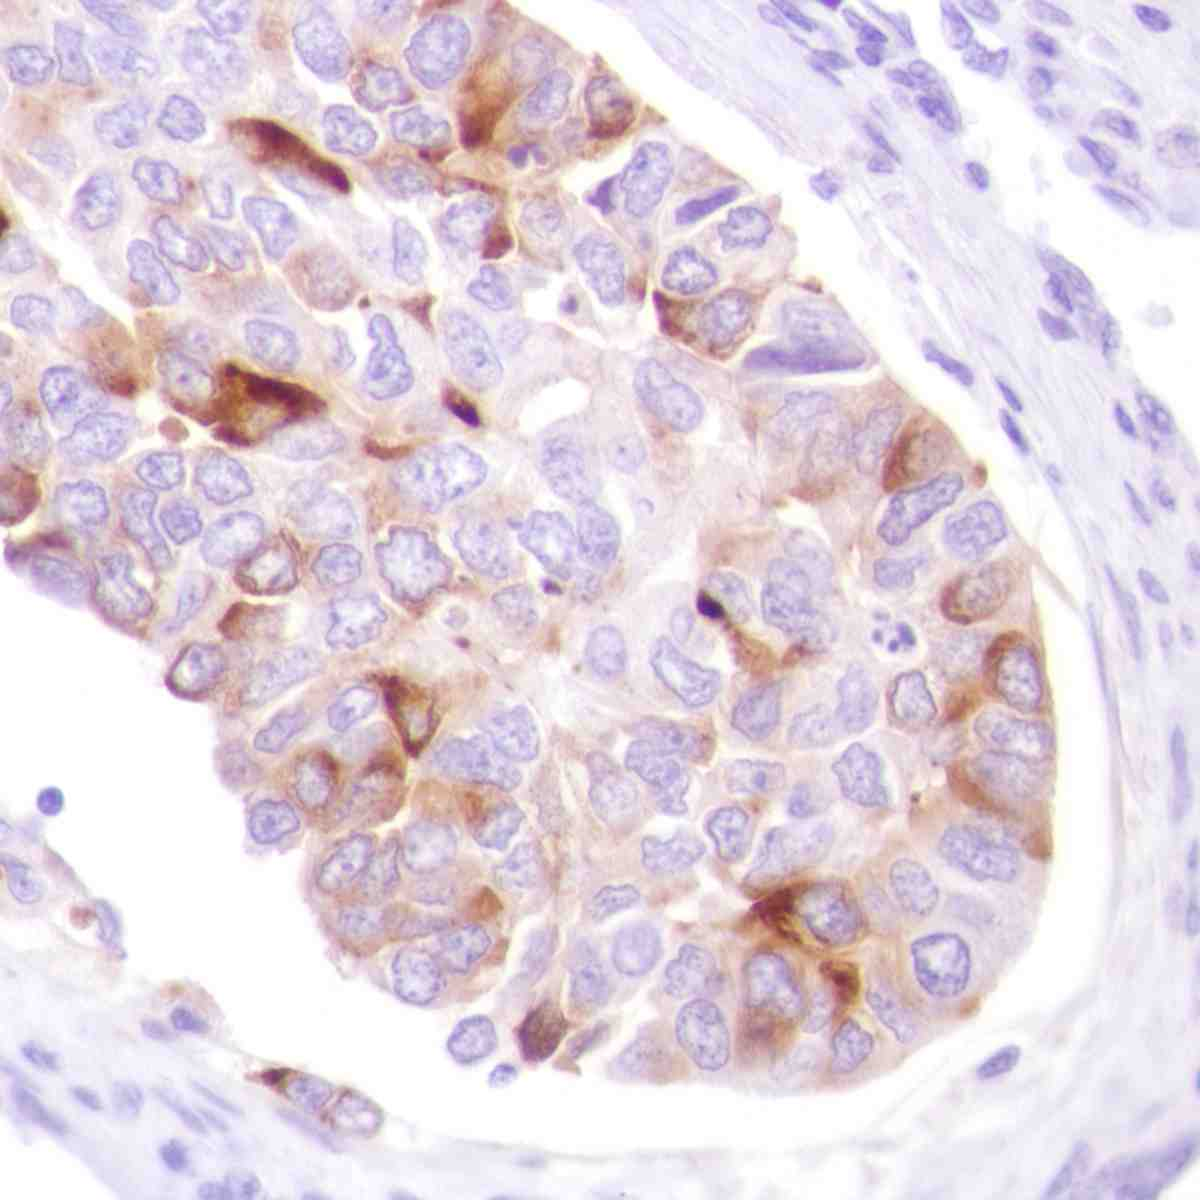 Human Breast Ductal Carcinoma stained with anti-GCDFP15 antibody